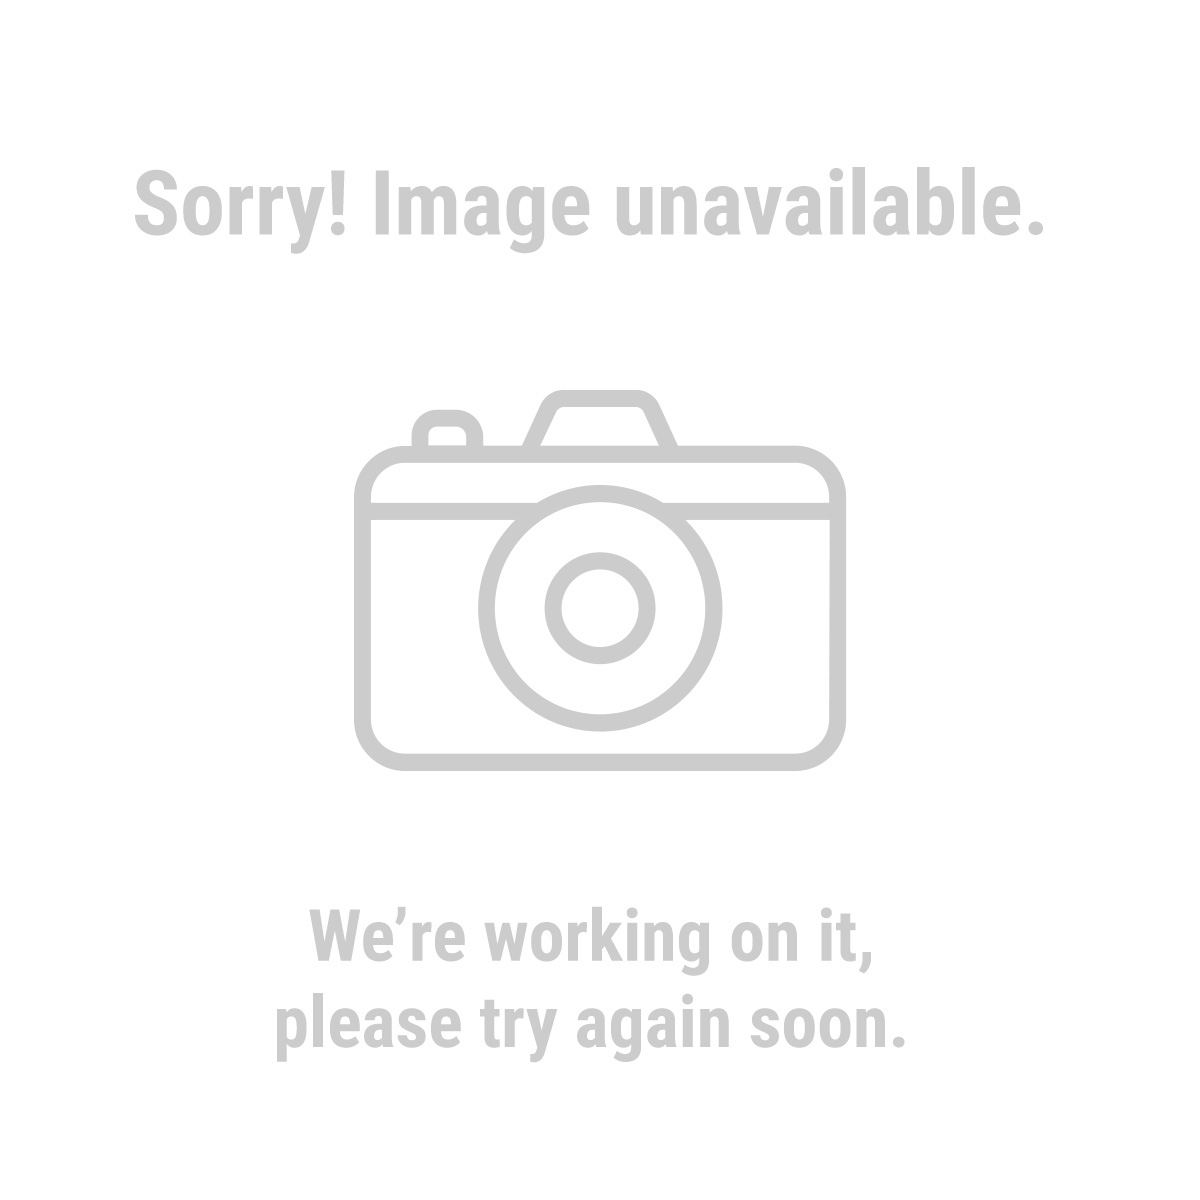 47410 Dual Head Pivoting Work Light With Stand